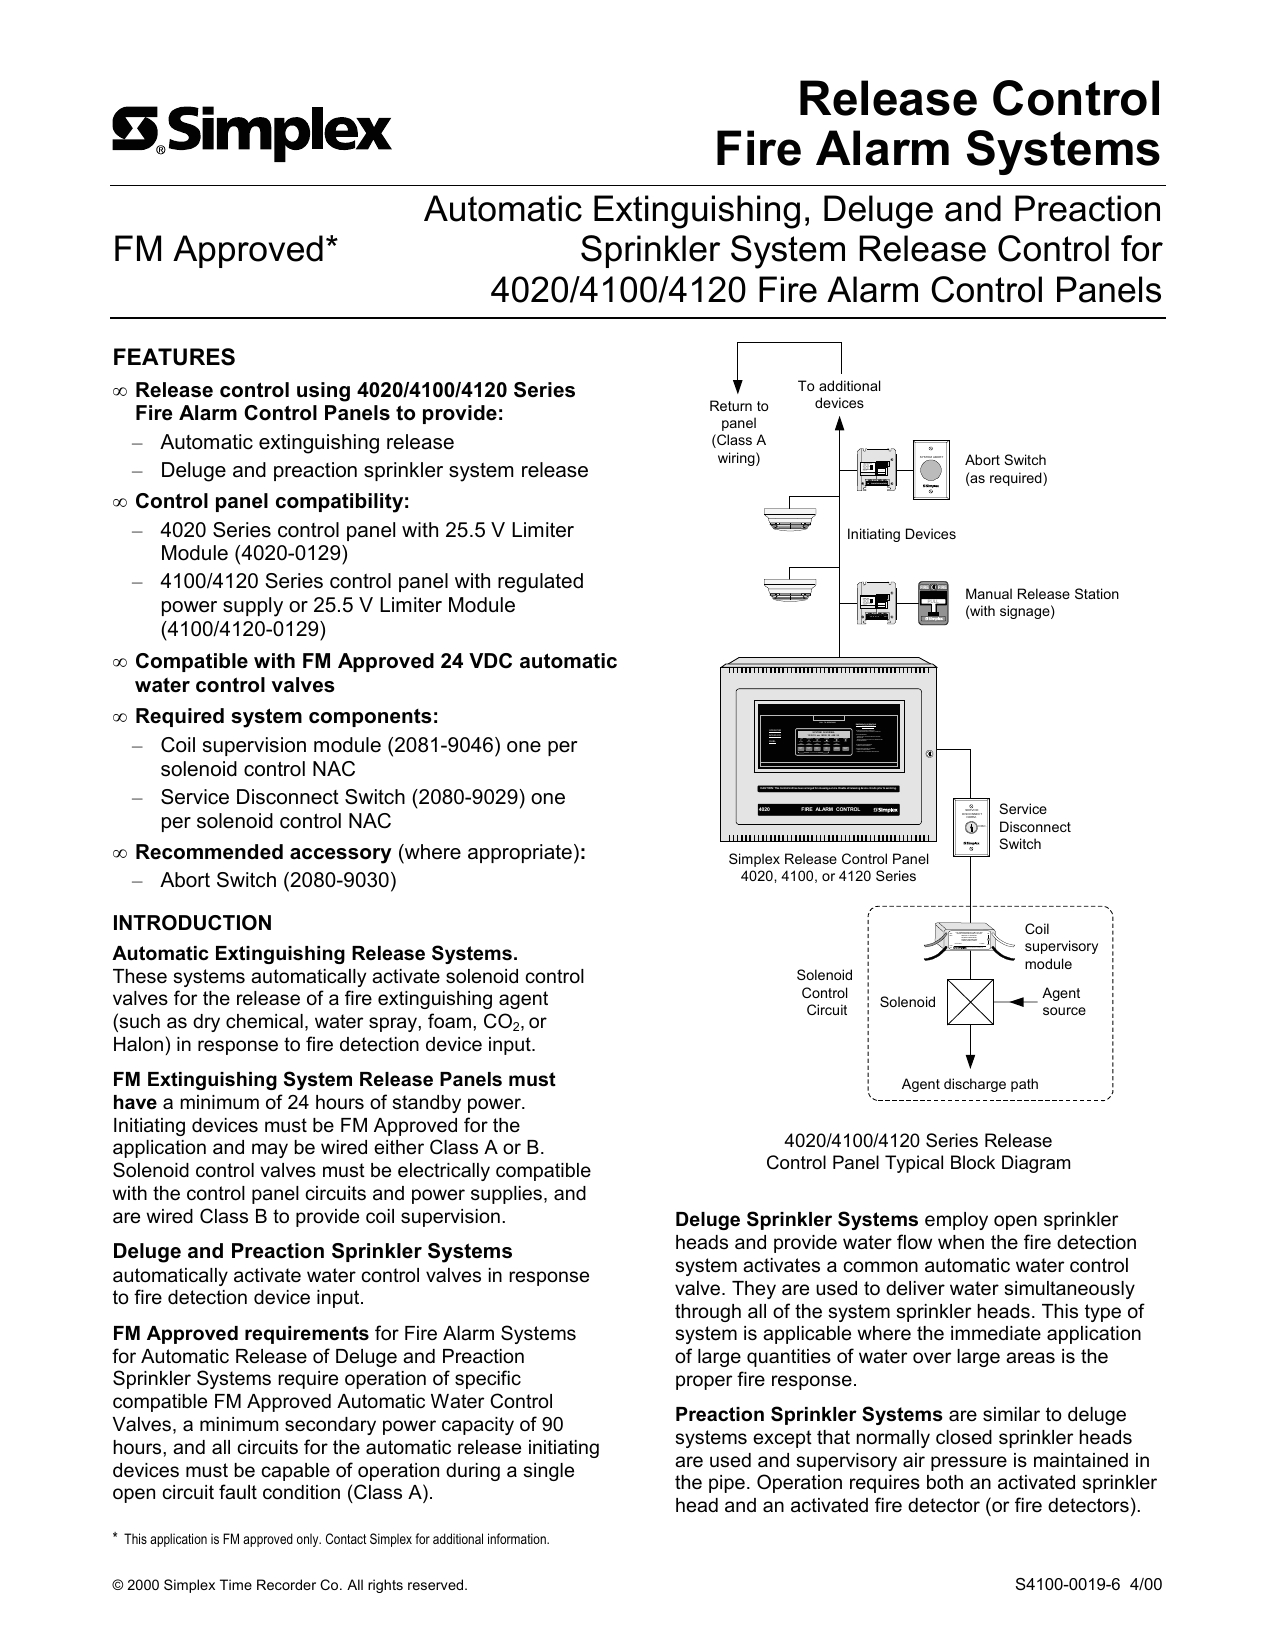 release control fire alarm systems